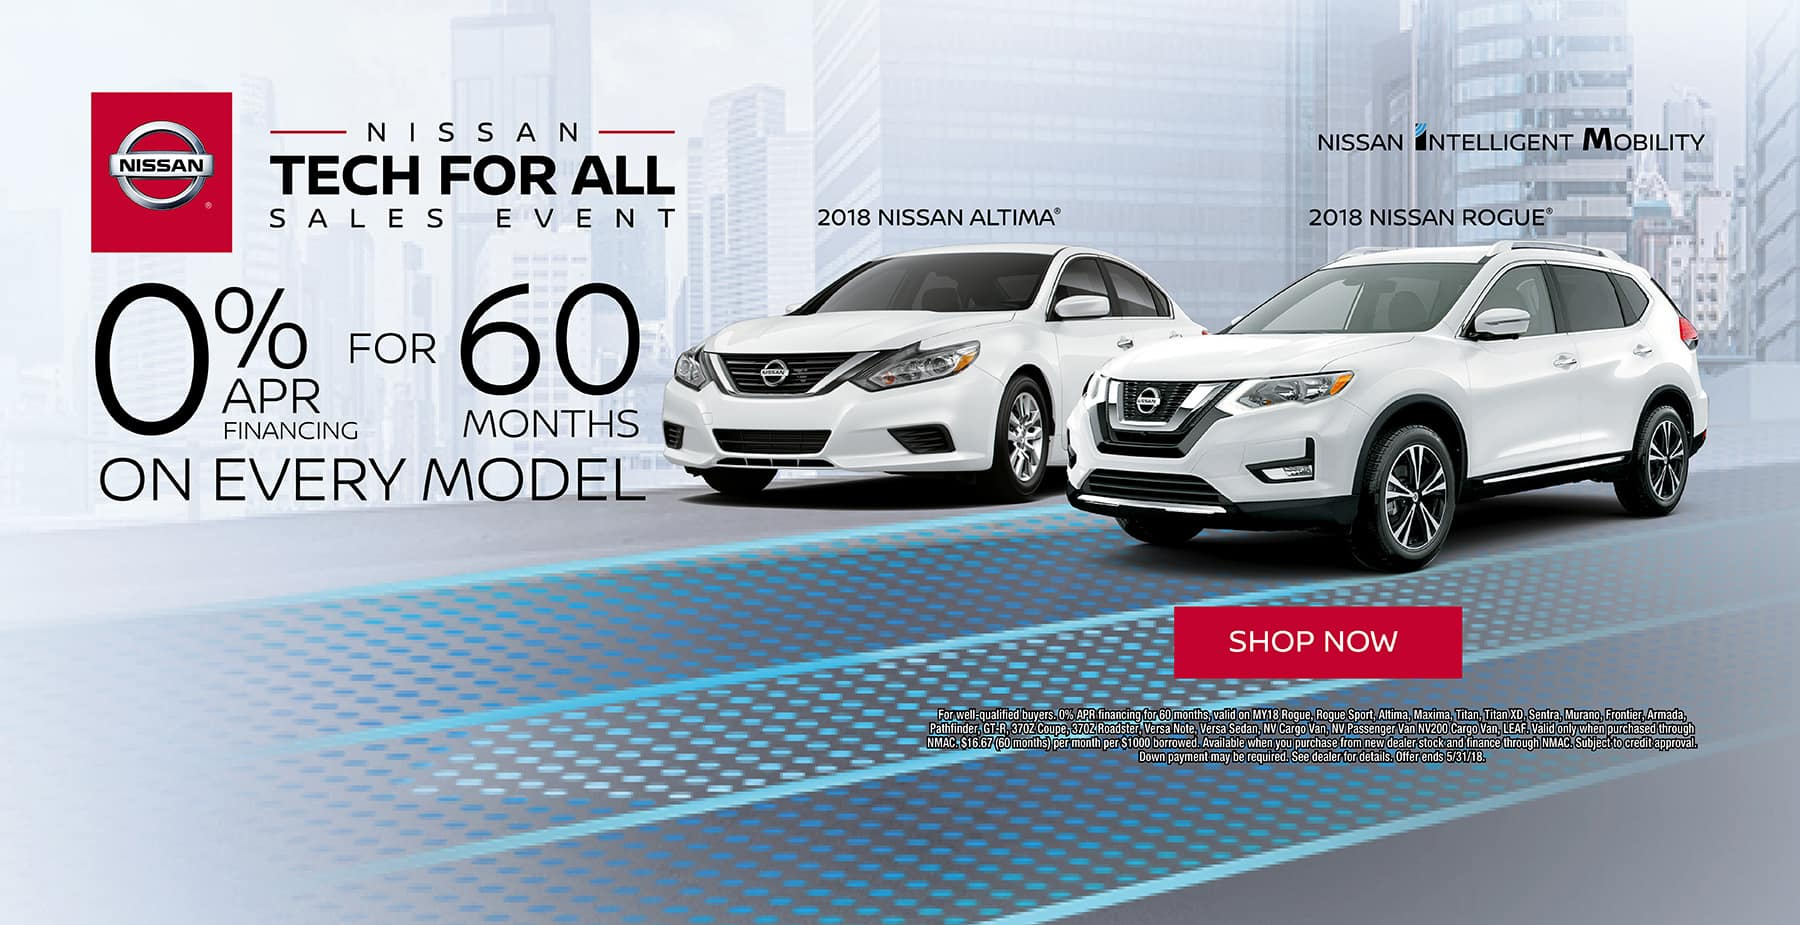 Time to Upgrade to a New Nissan with 0% for 60 months on all New Nissan Models during the Nissan Tech for All Sales Event at Star Nissan!